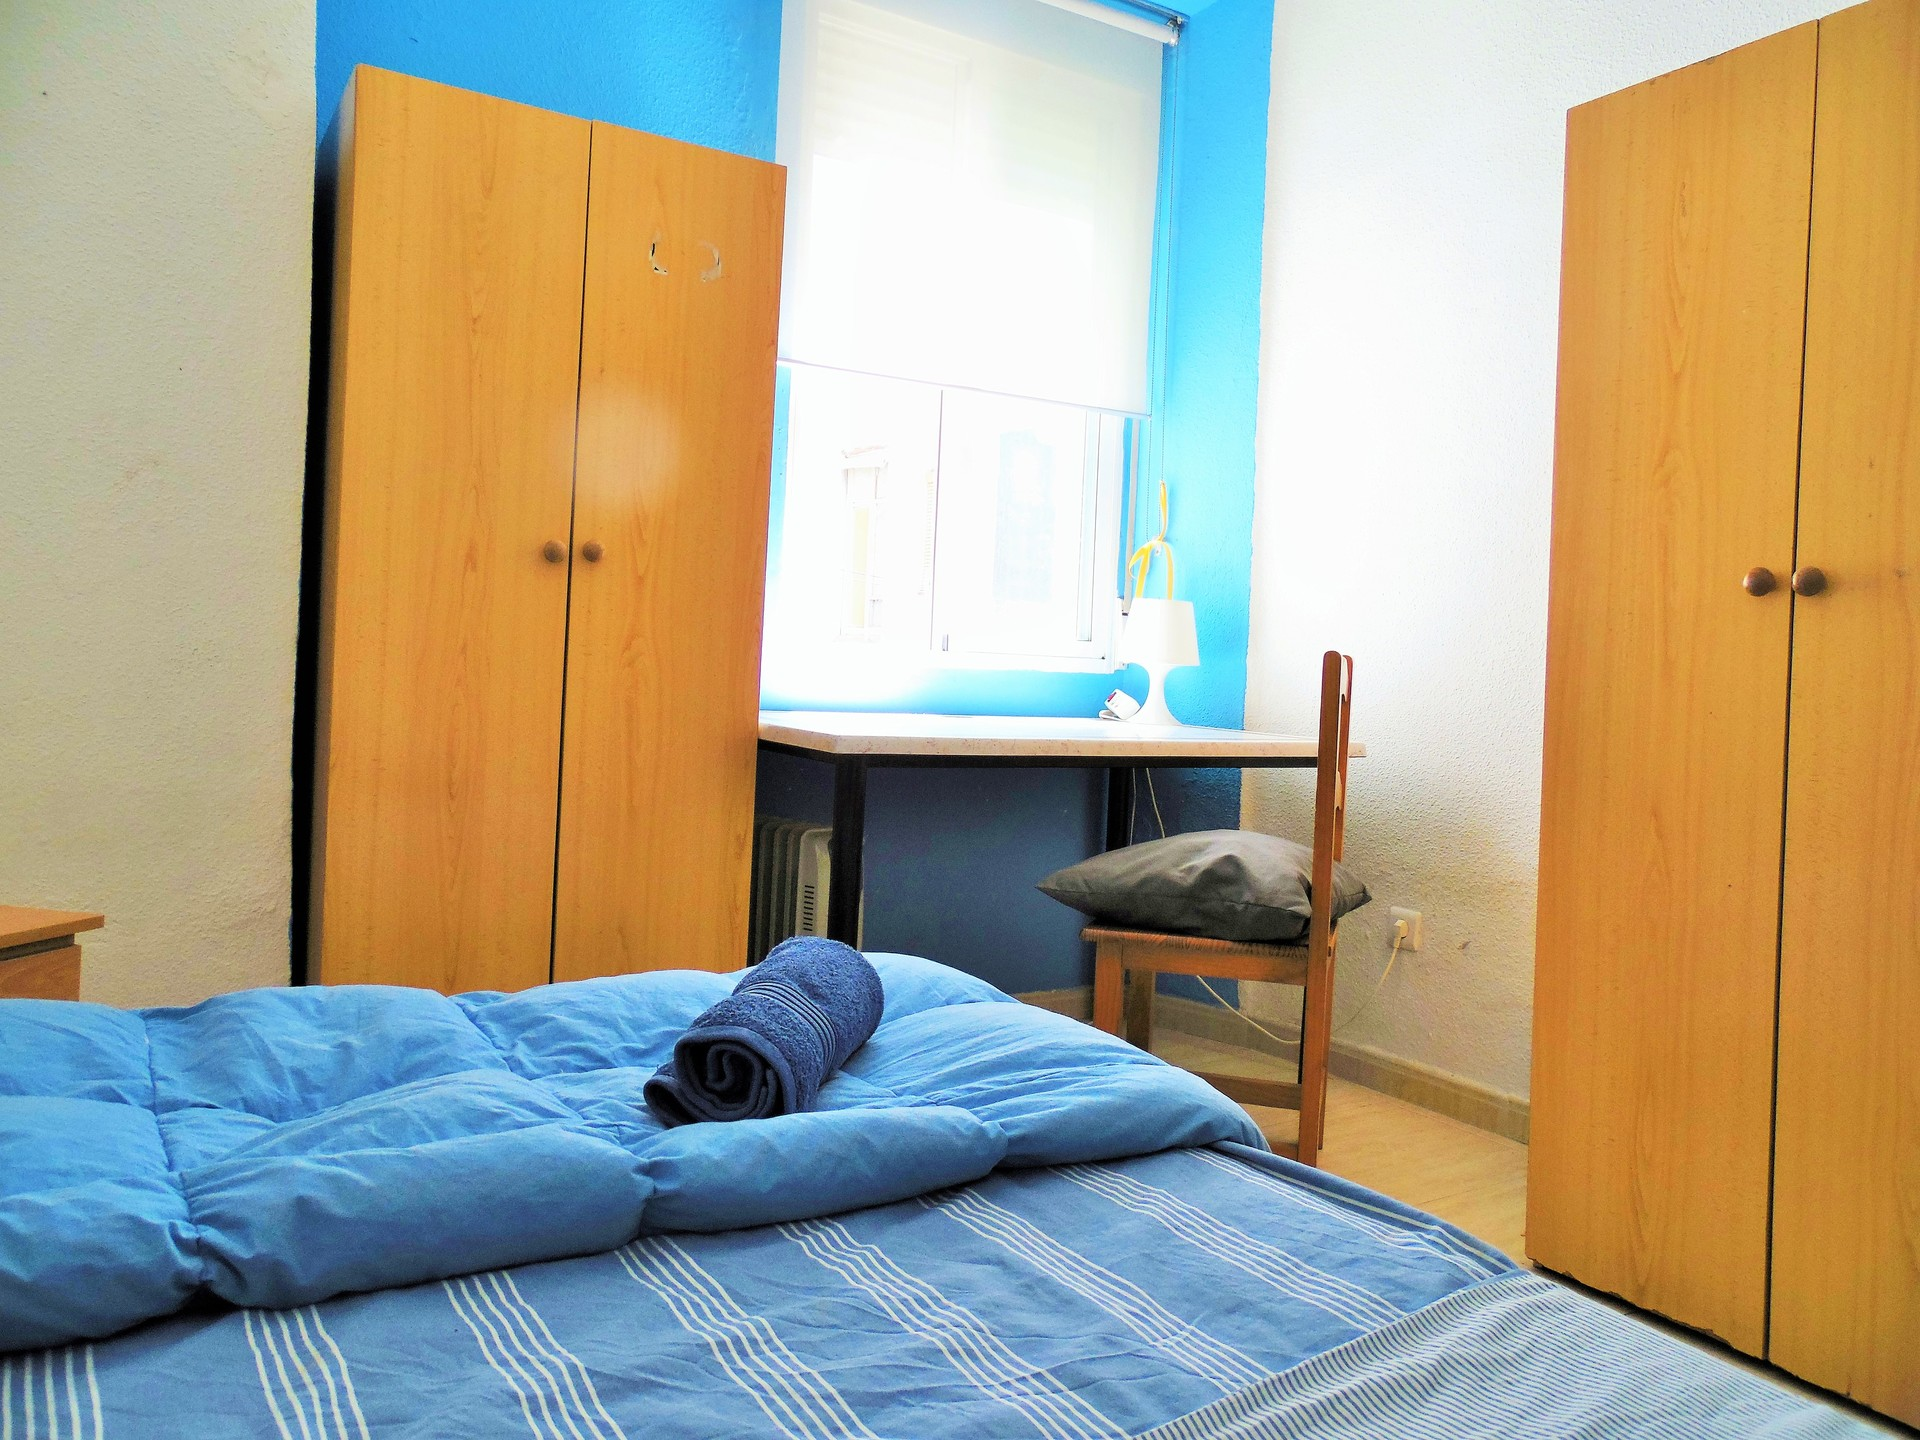 central-student-apartment-close-university-cartuja-fuentenueva-9410ab4597cebdb7d59b0d3047c677bf